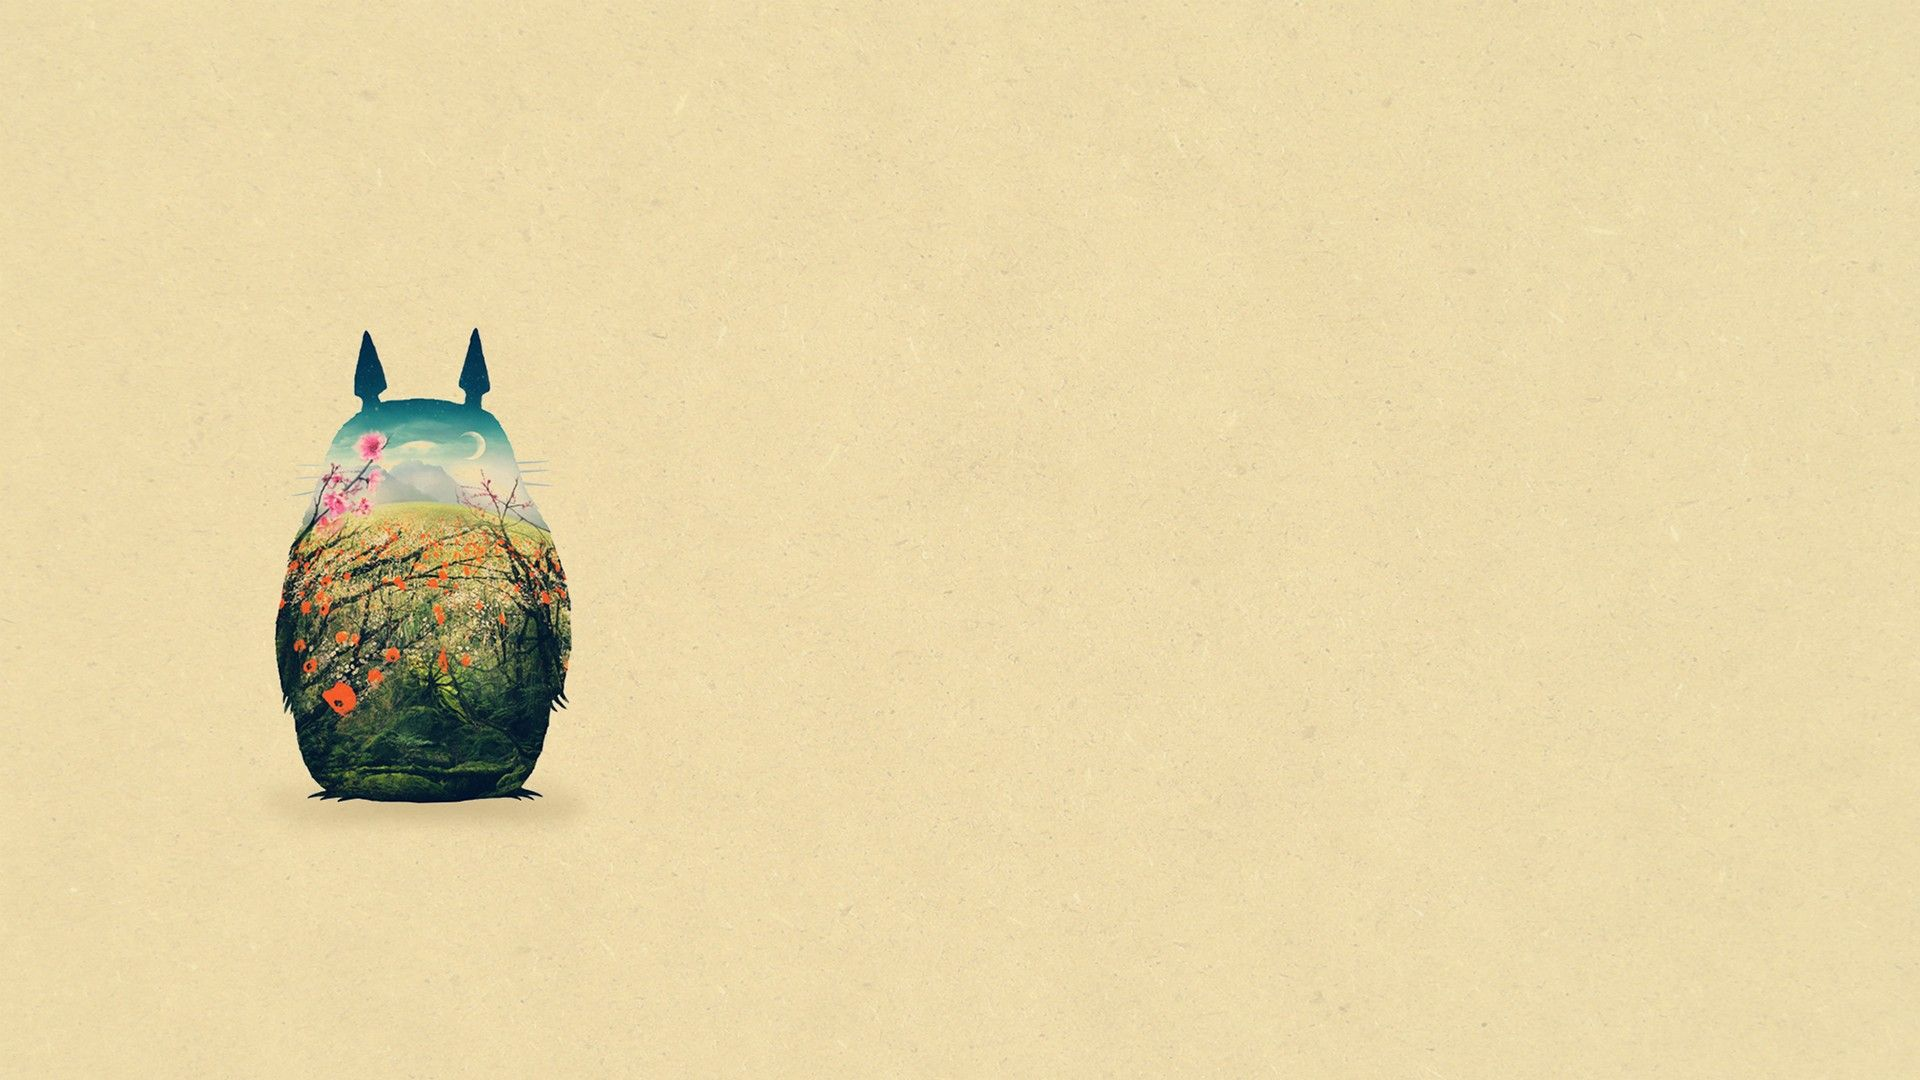 Hd Ghibli Wallpaper 1080: Totoro HD 1080p Wallpapers Download